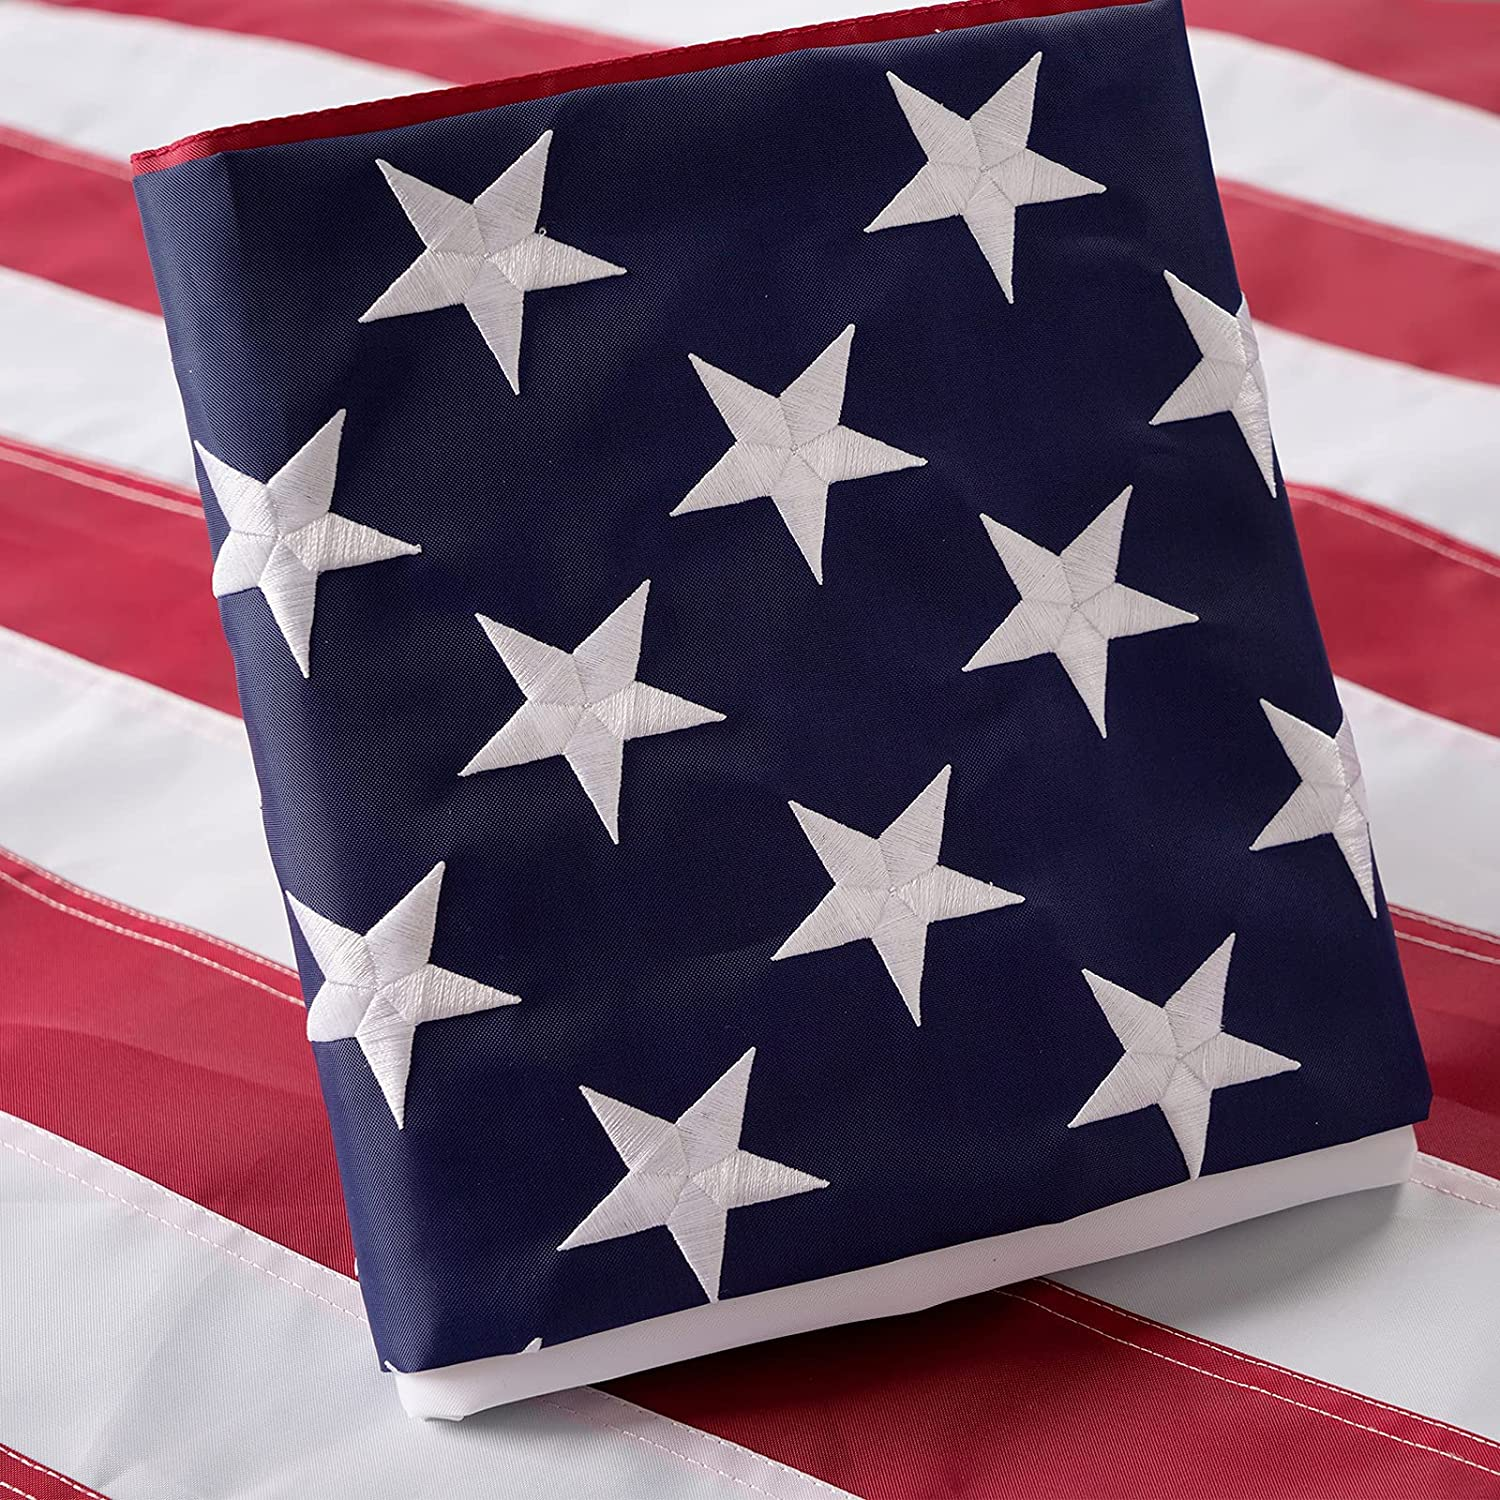 Flagolden American US Flag 3x5 Outdoor Challenge the lowest price Embroidered Sta Banner Ft Max 77% OFF